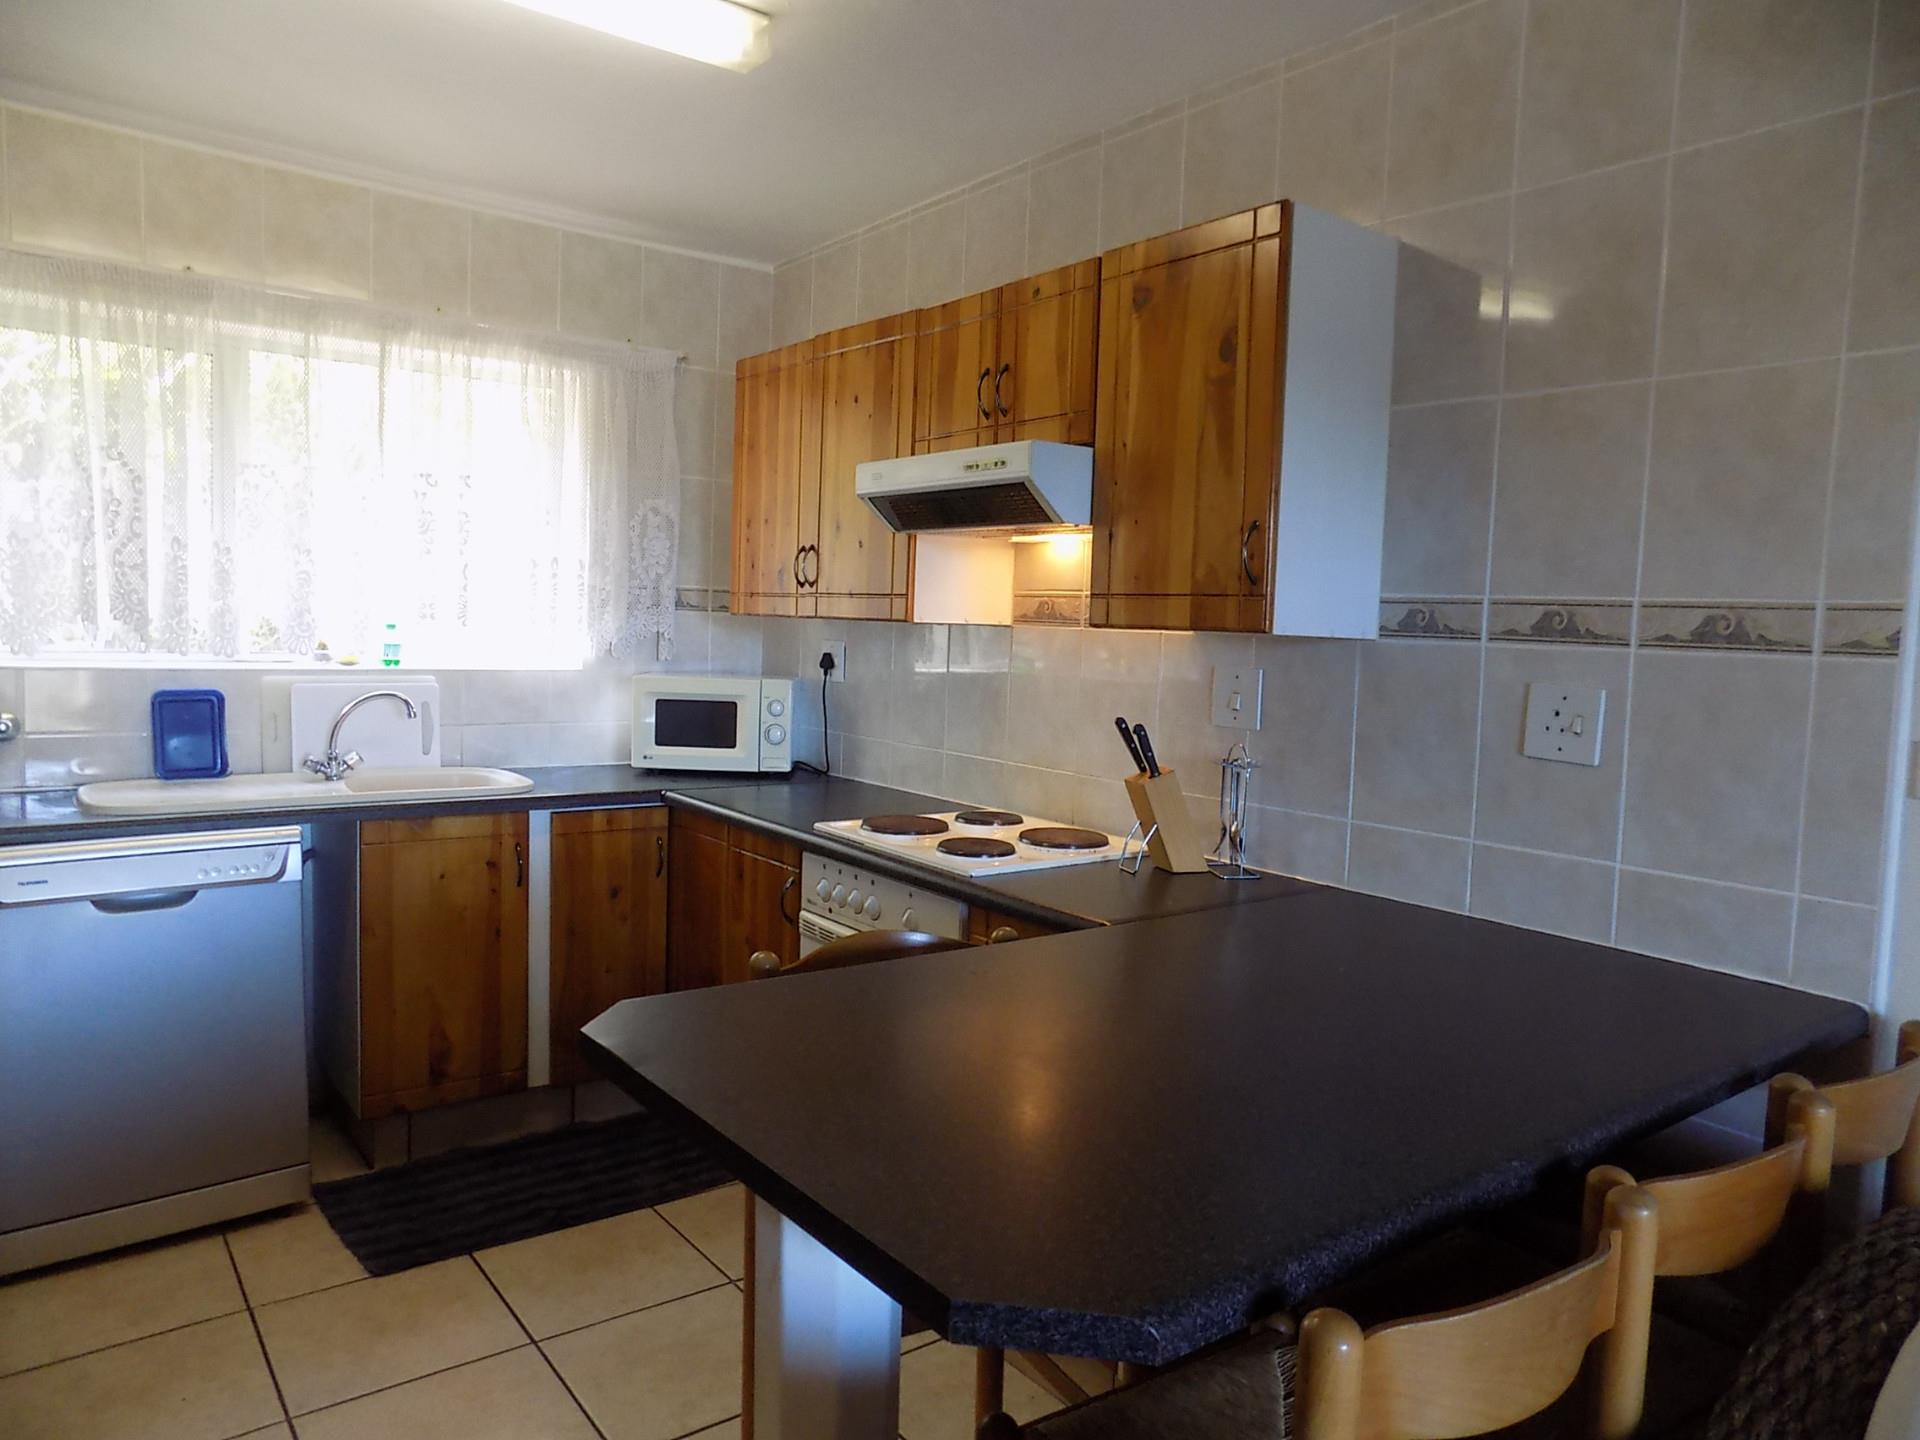 2 Bedroom Apartment / Flat For Sale in Ramsgate